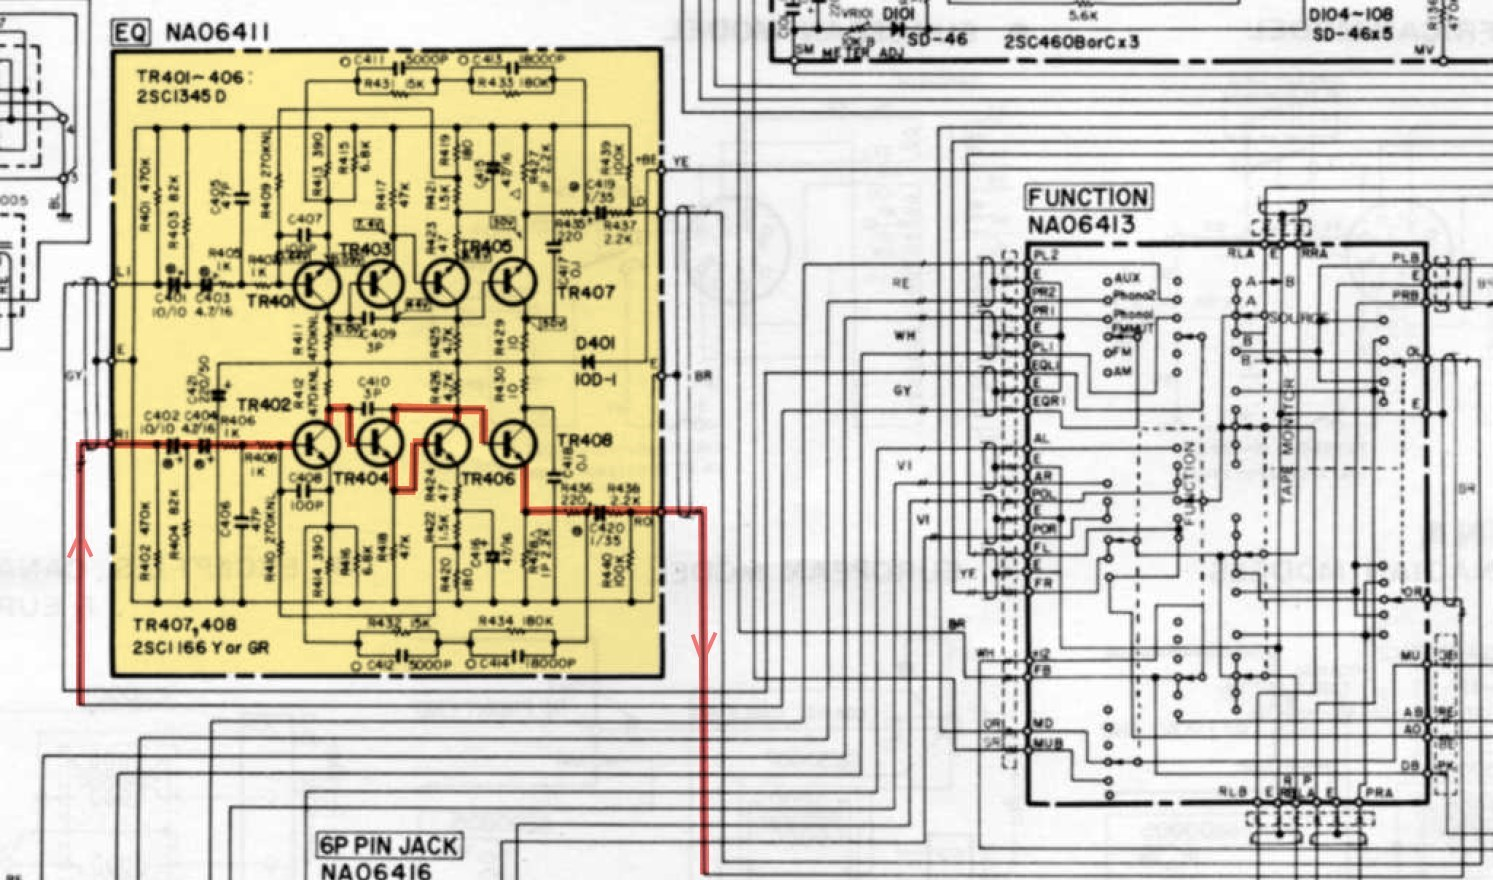 Surprising Yamaha Cr 800 Equalizer Circuit Board Schematic Hifi Forum De Wiring Cloud Brecesaoduqqnet